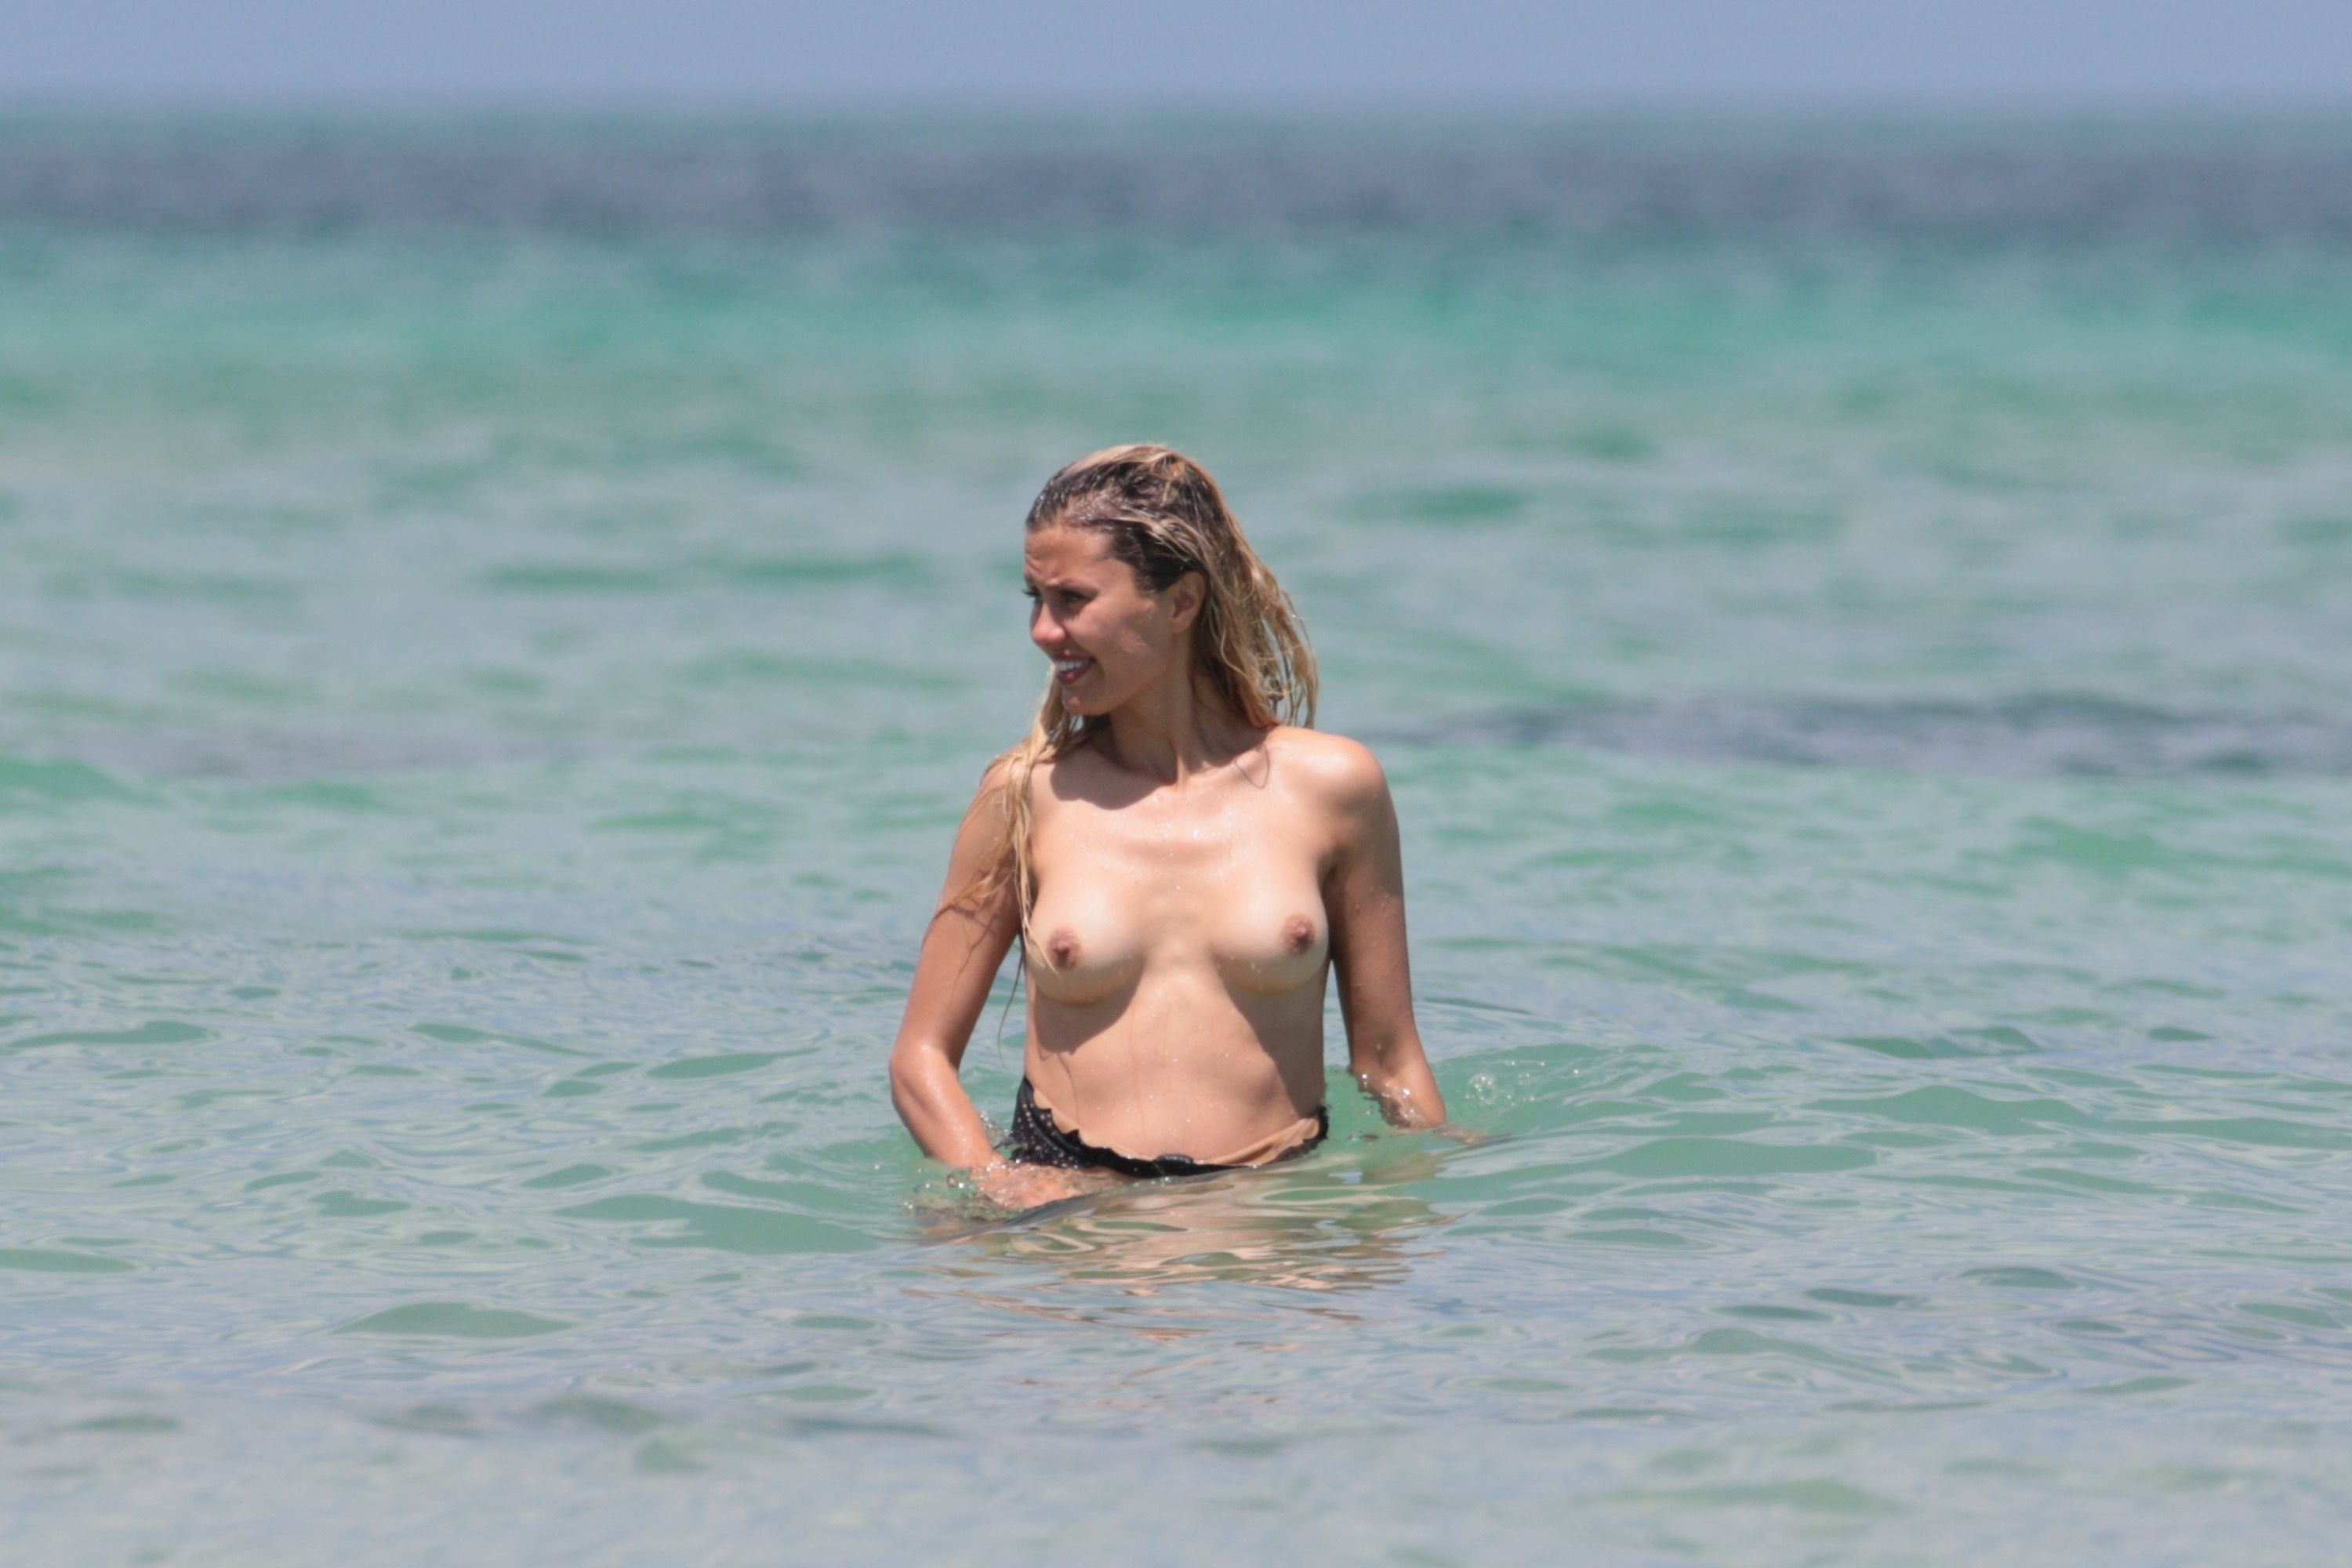 Topless on the beach 1